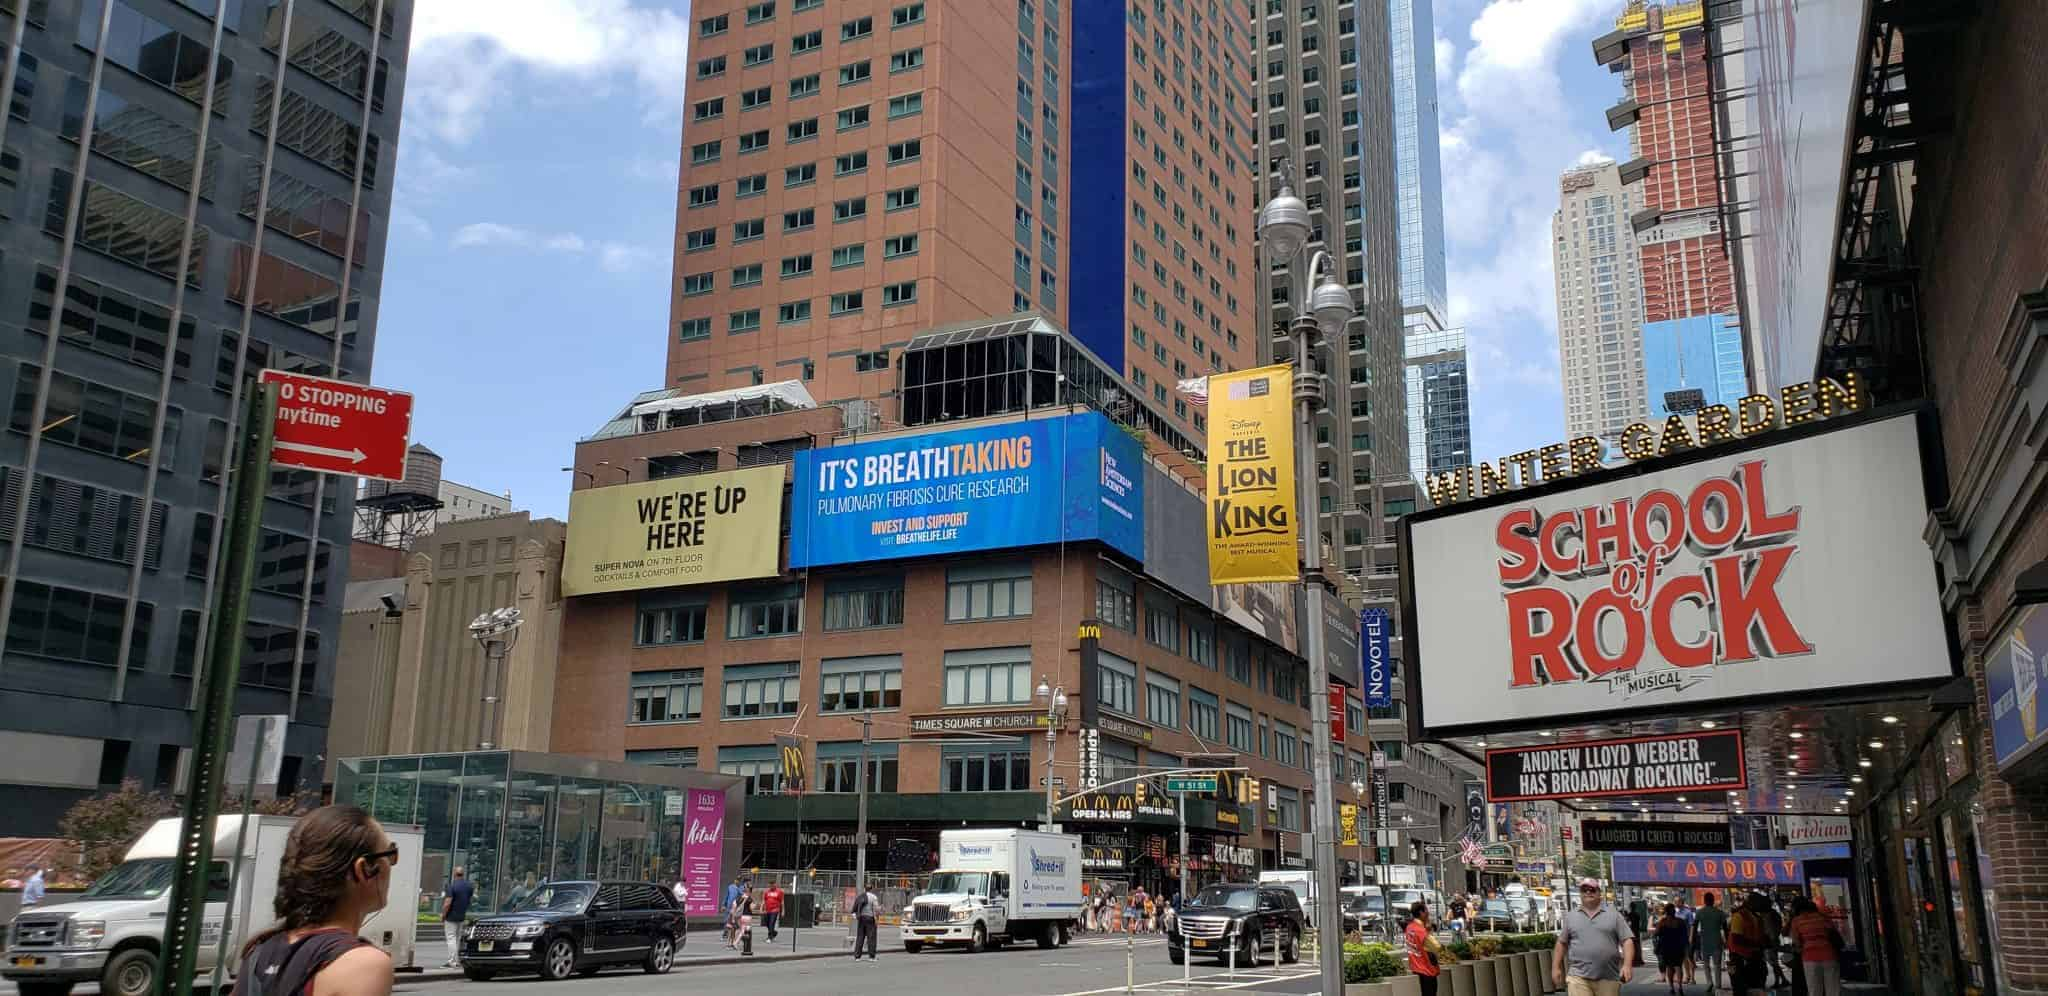 QST LED installs 21 x 80′ 10mm screen in Times Square